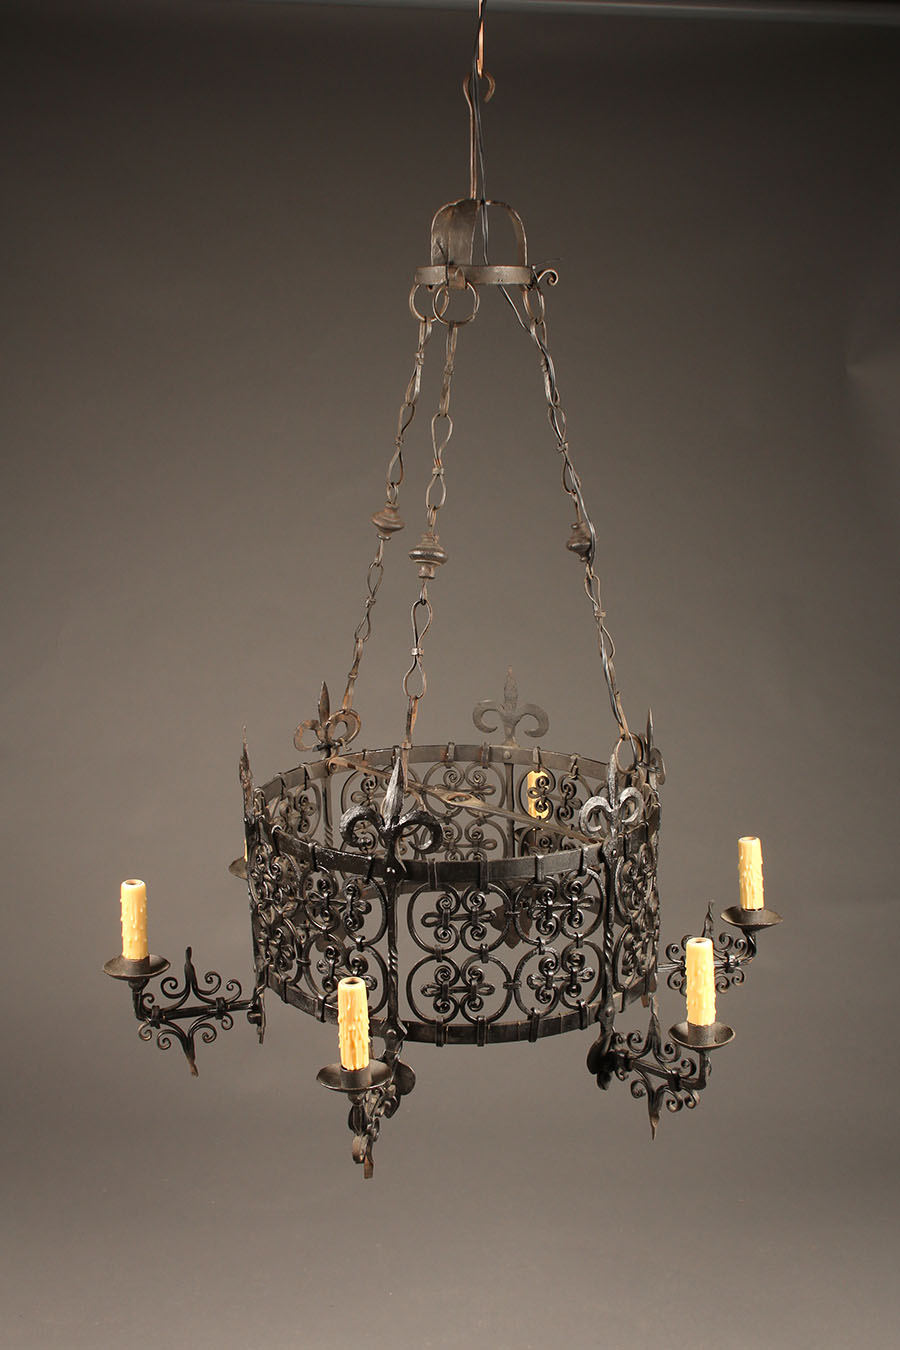 Home/Lighting/Chandeliers/Iron Chandeliers - French Wrought Iron Six Arm Rustic Antique Chandelier